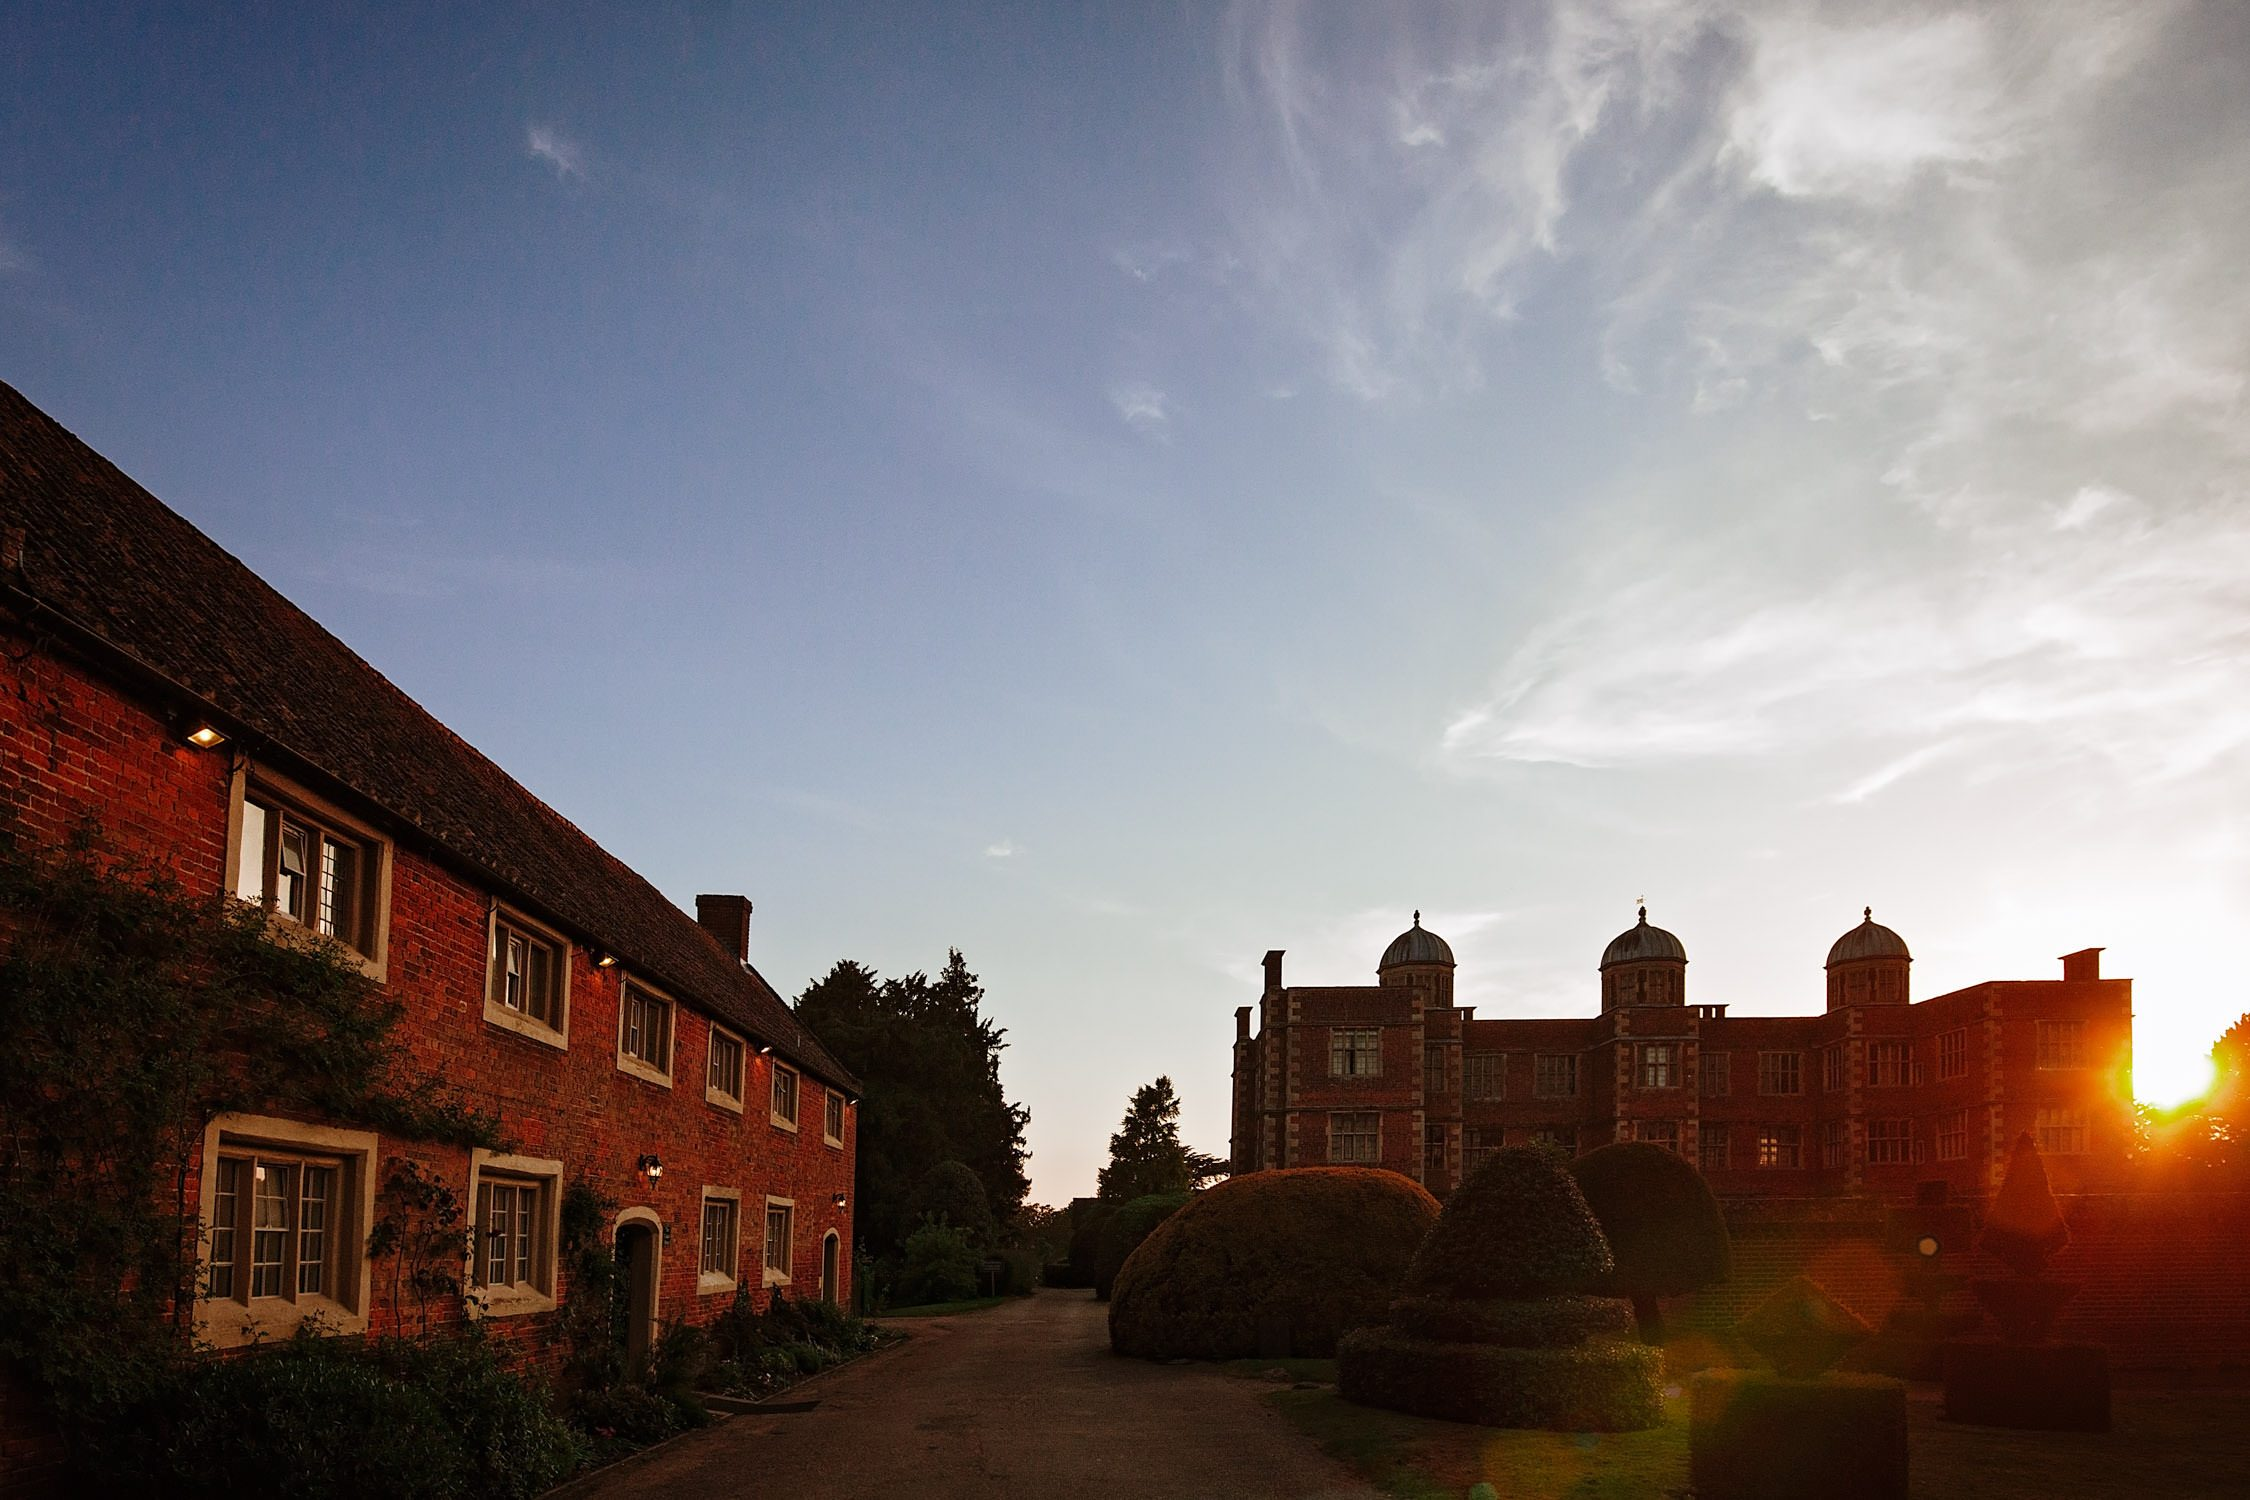 doddington hall at sunset